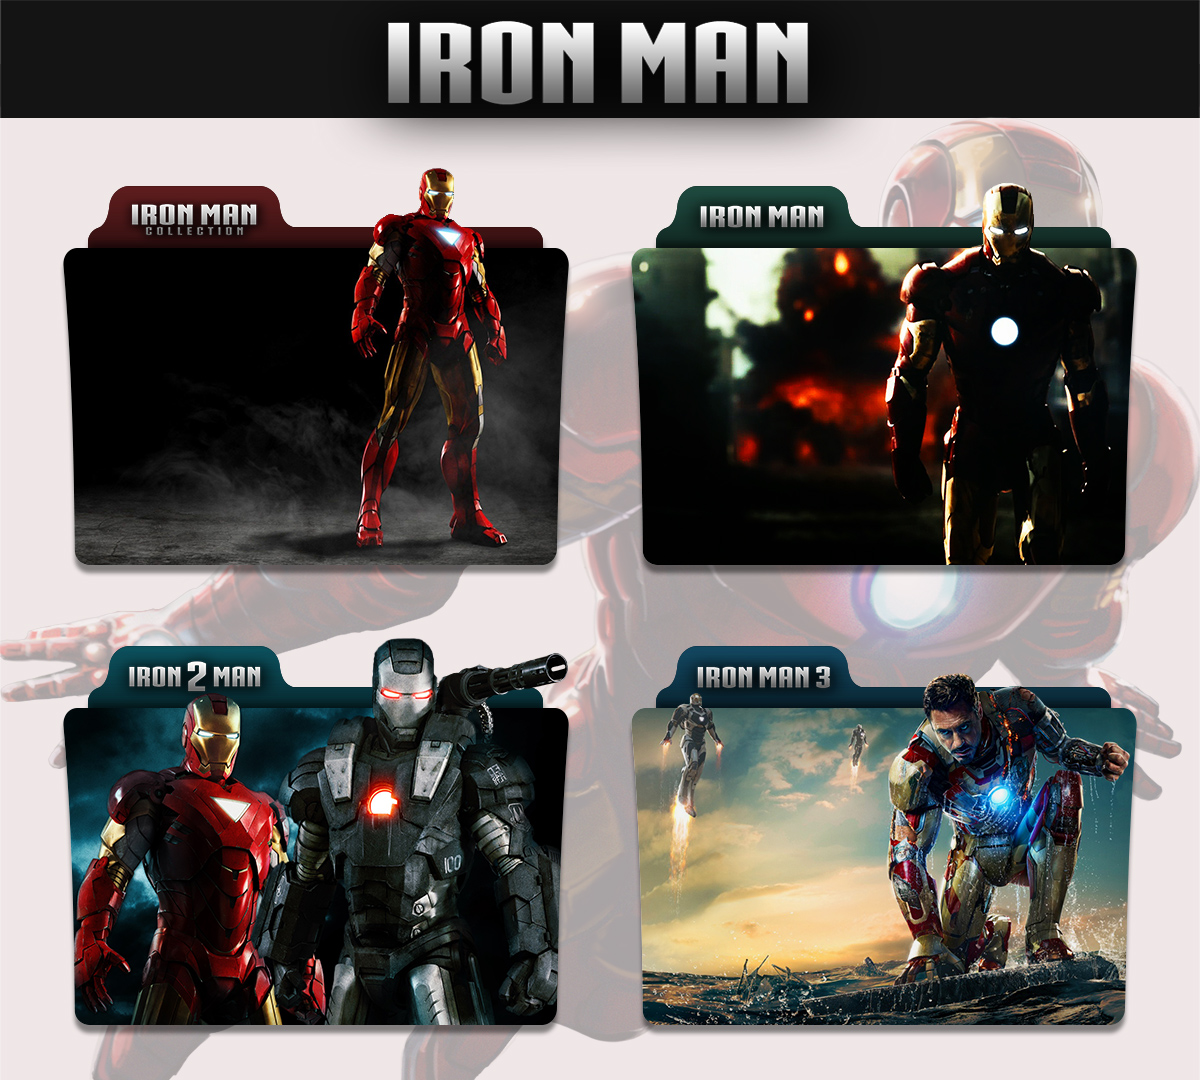 Iron Man Collection 2008 - 2013 Folder Icon by sonerbyzt on DeviantArt